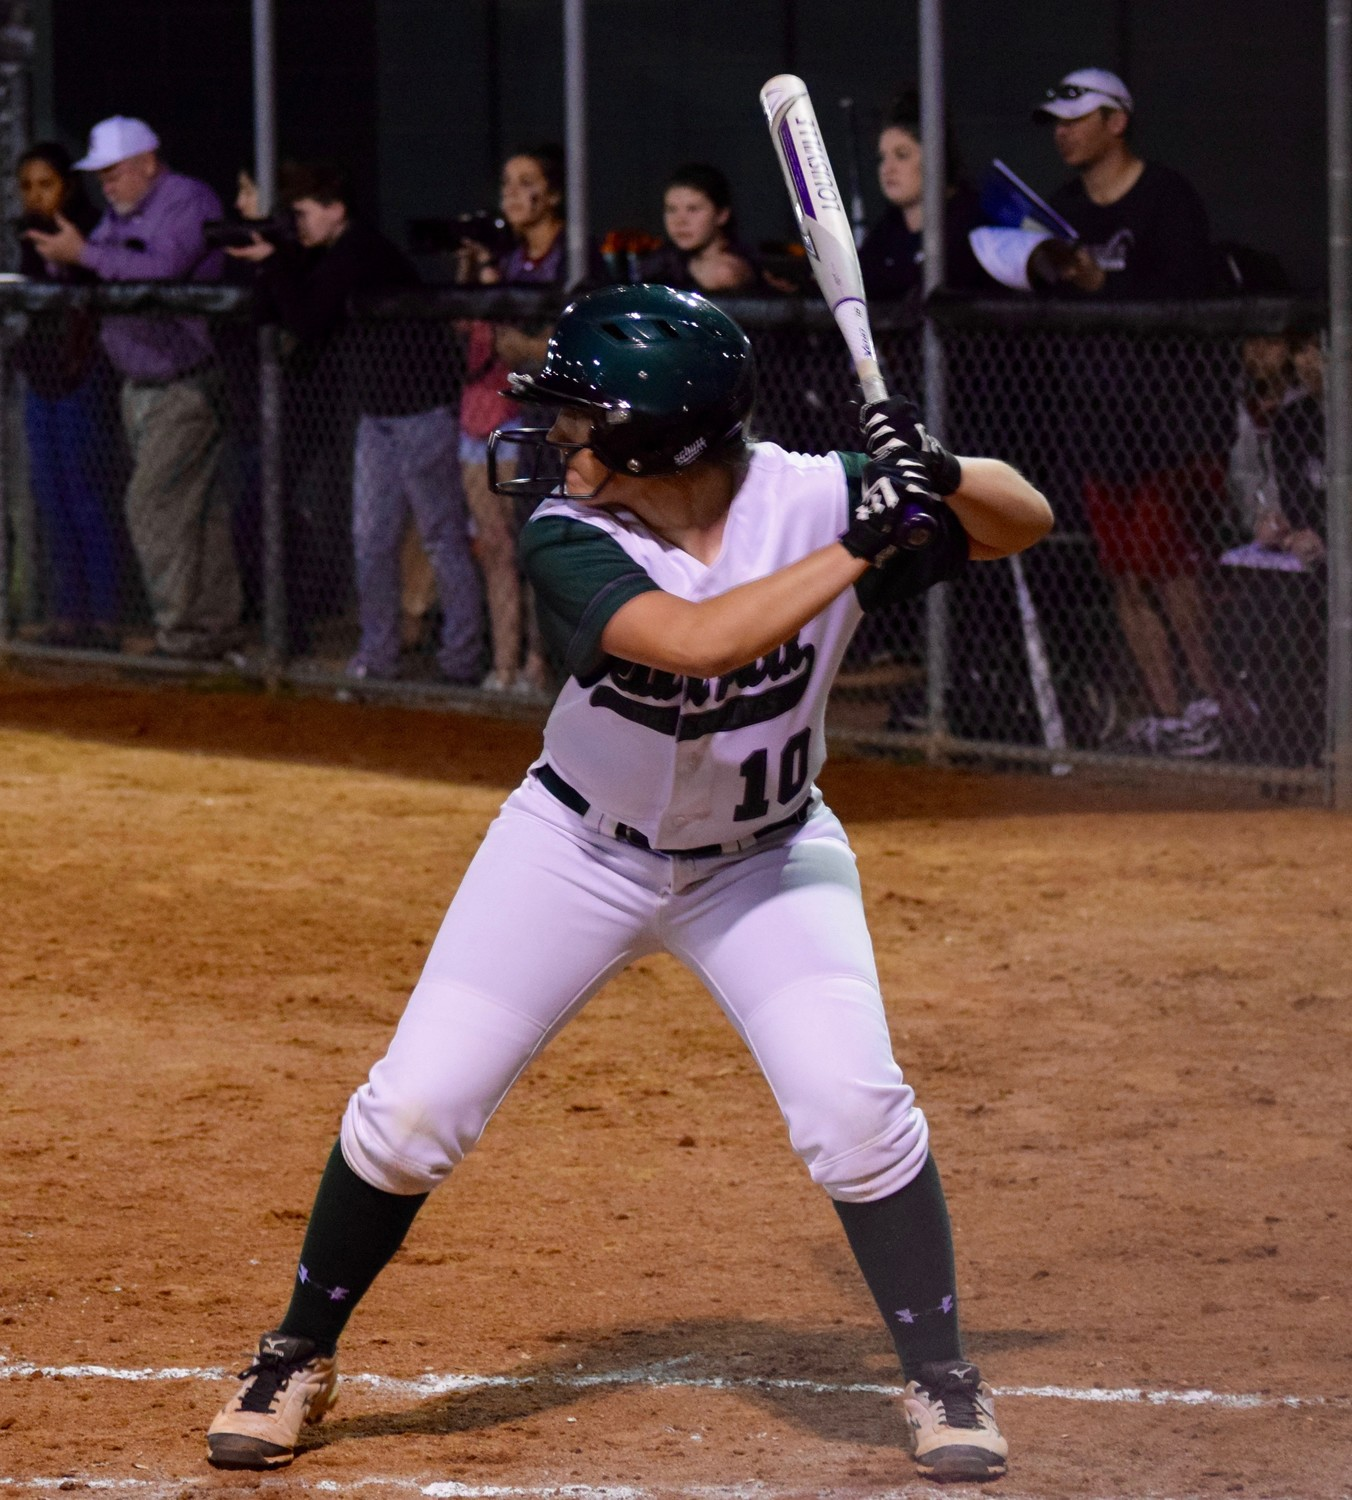 Madelyn Orozco drove in a pair of runs and Cedar Park beat Rouse 9-6 on Friday night.